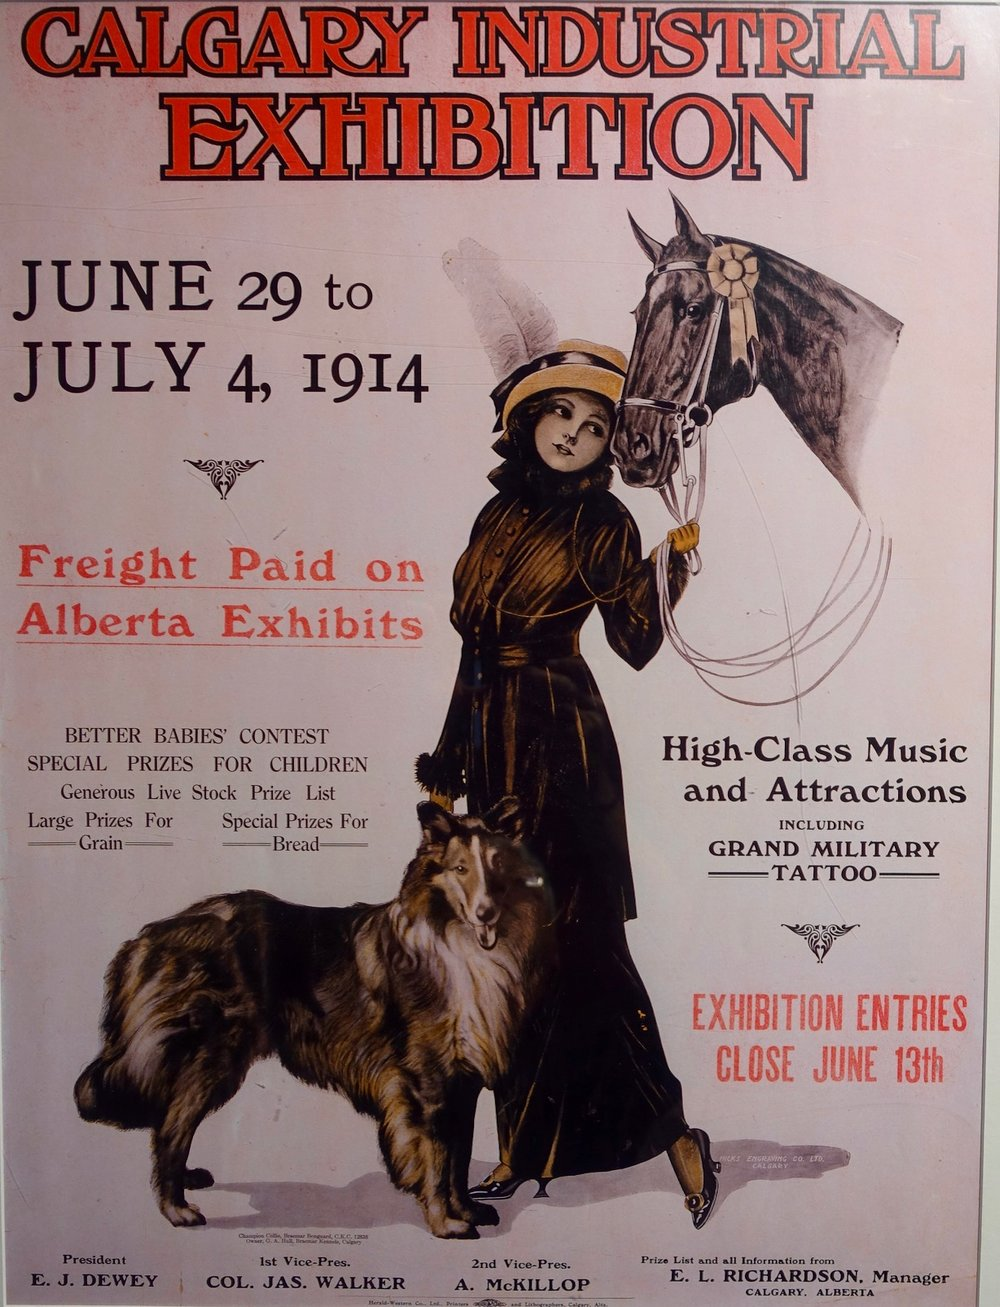 There is a rare history lesson in the parade of posters (100+) along the elevated concourse (+15) from the LRT Station to Saddledome. It is fun to look at how the Stampede has evolved over the years and the famous people who have performed.  Link:      Flaneuring Calgary's Stampede Poster Parade